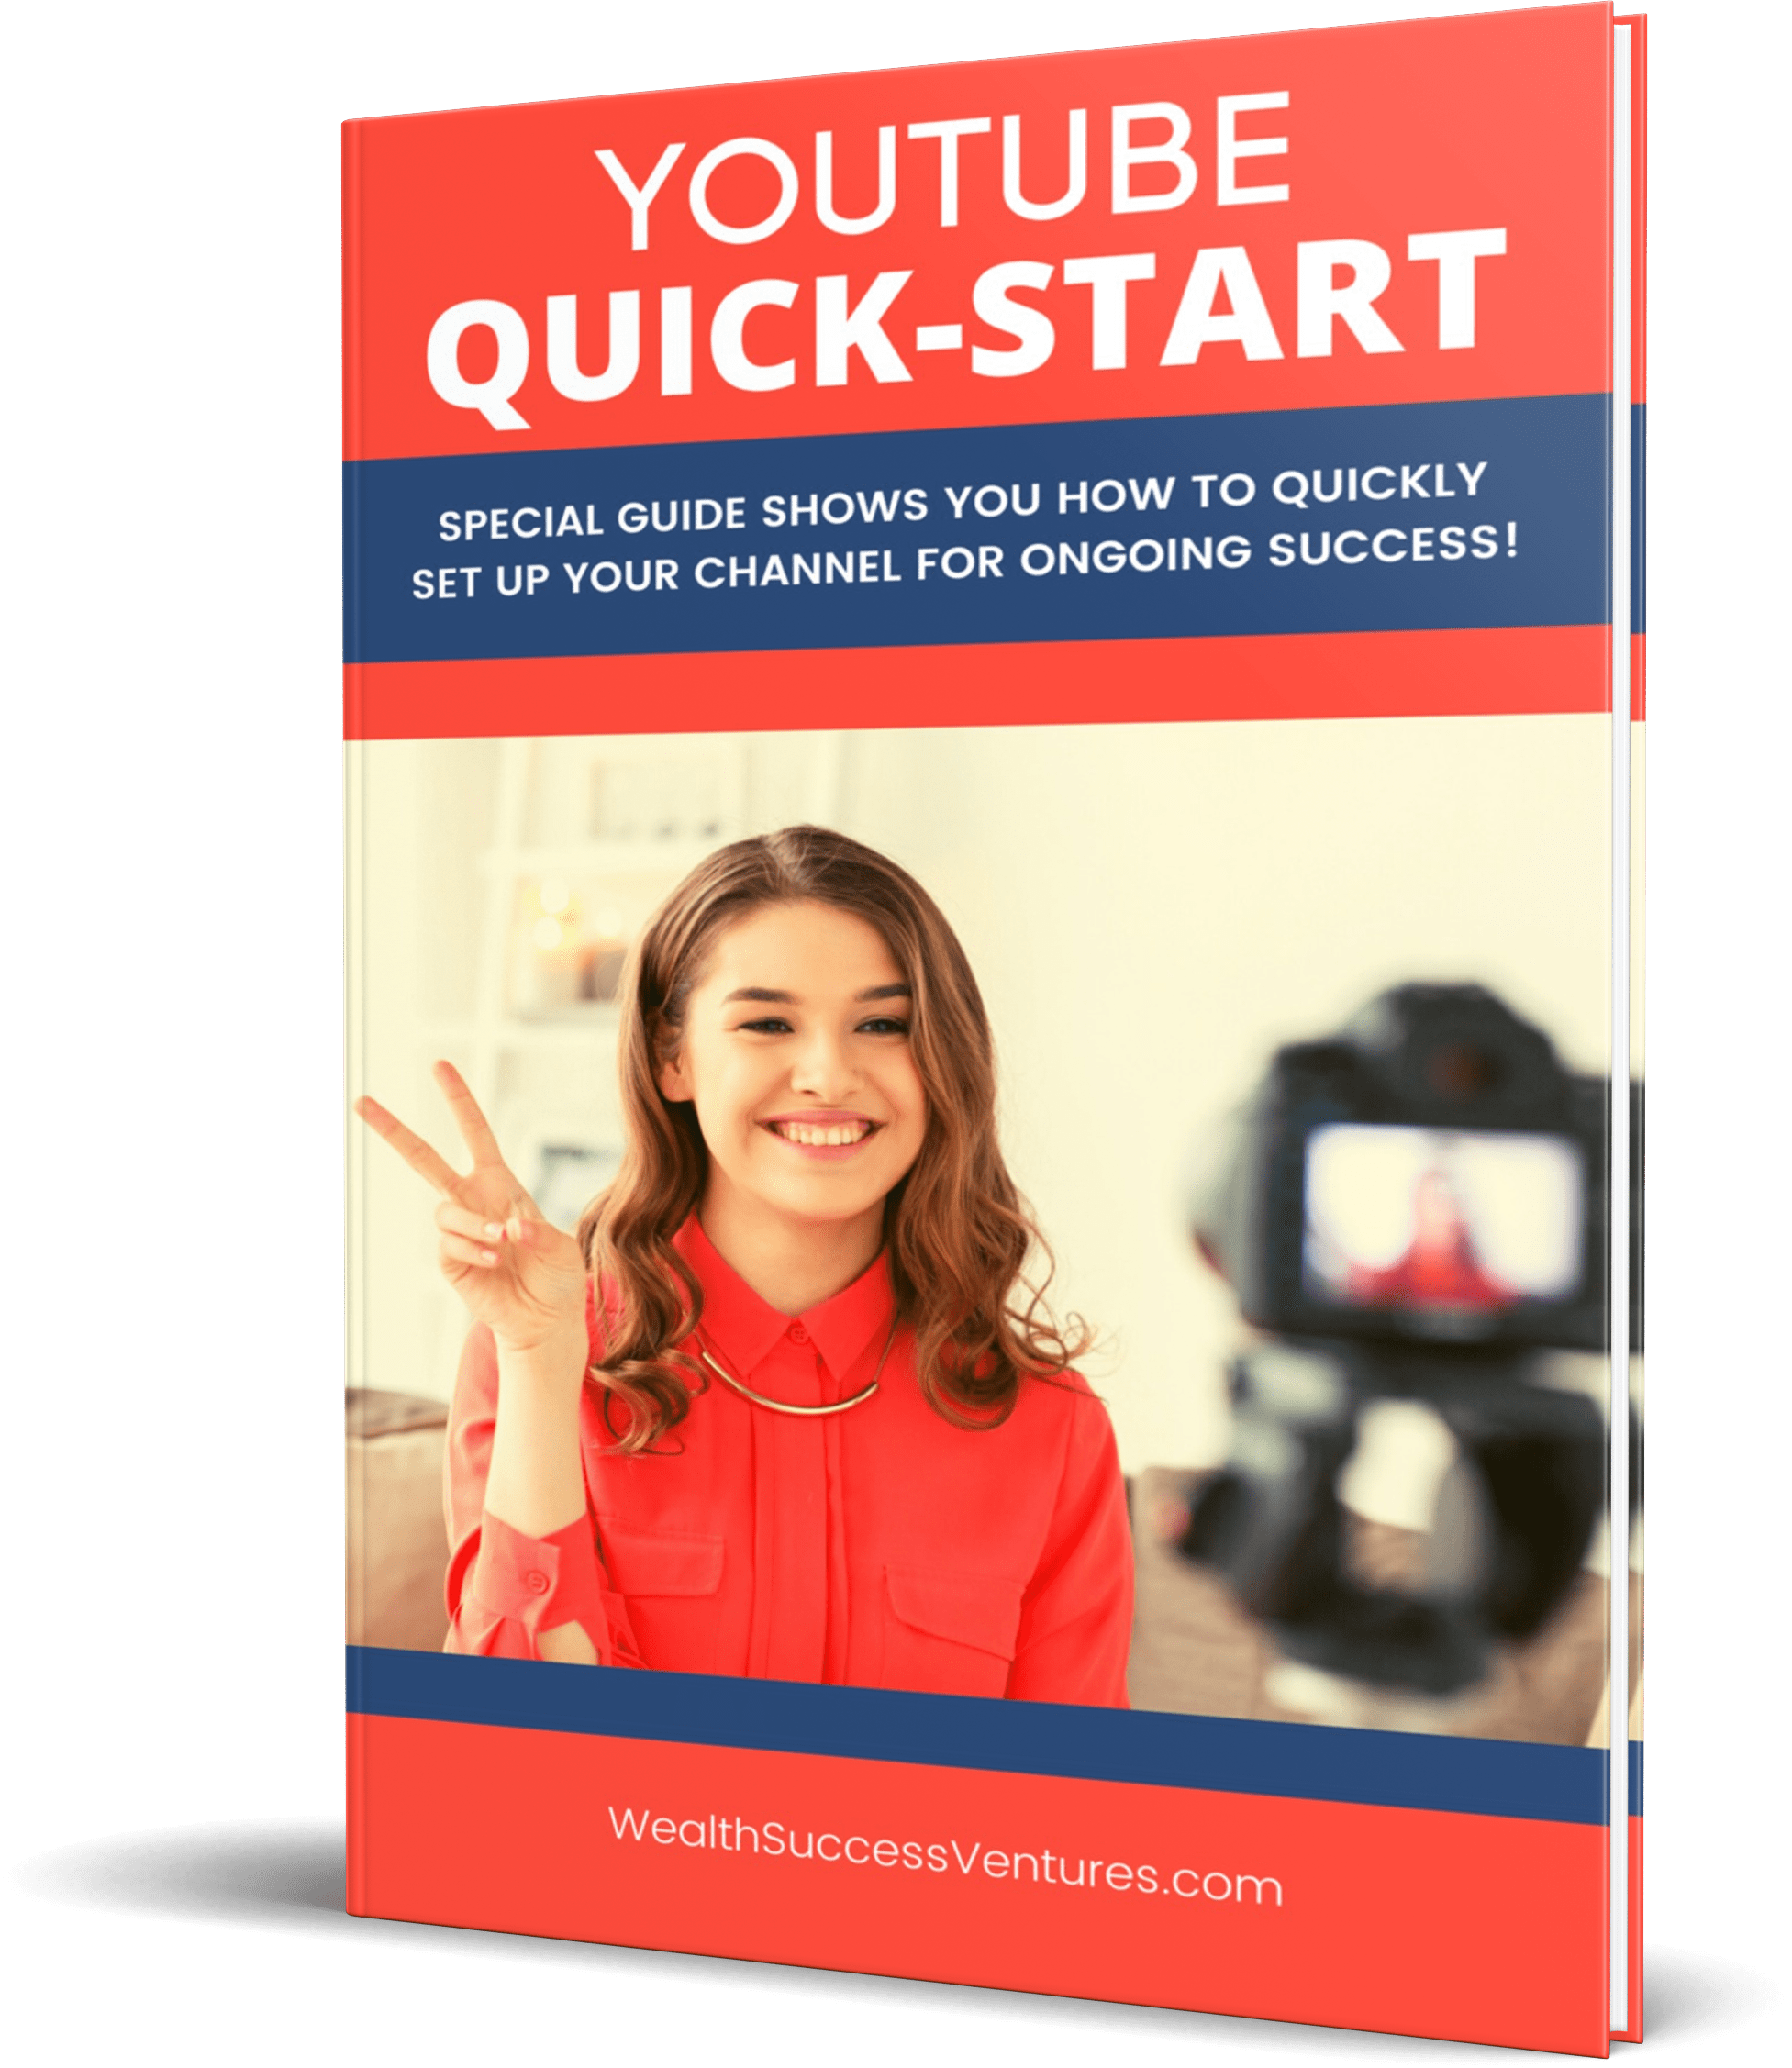 Youtube Quick Start Guide Female Red Top thin hardcover eCover